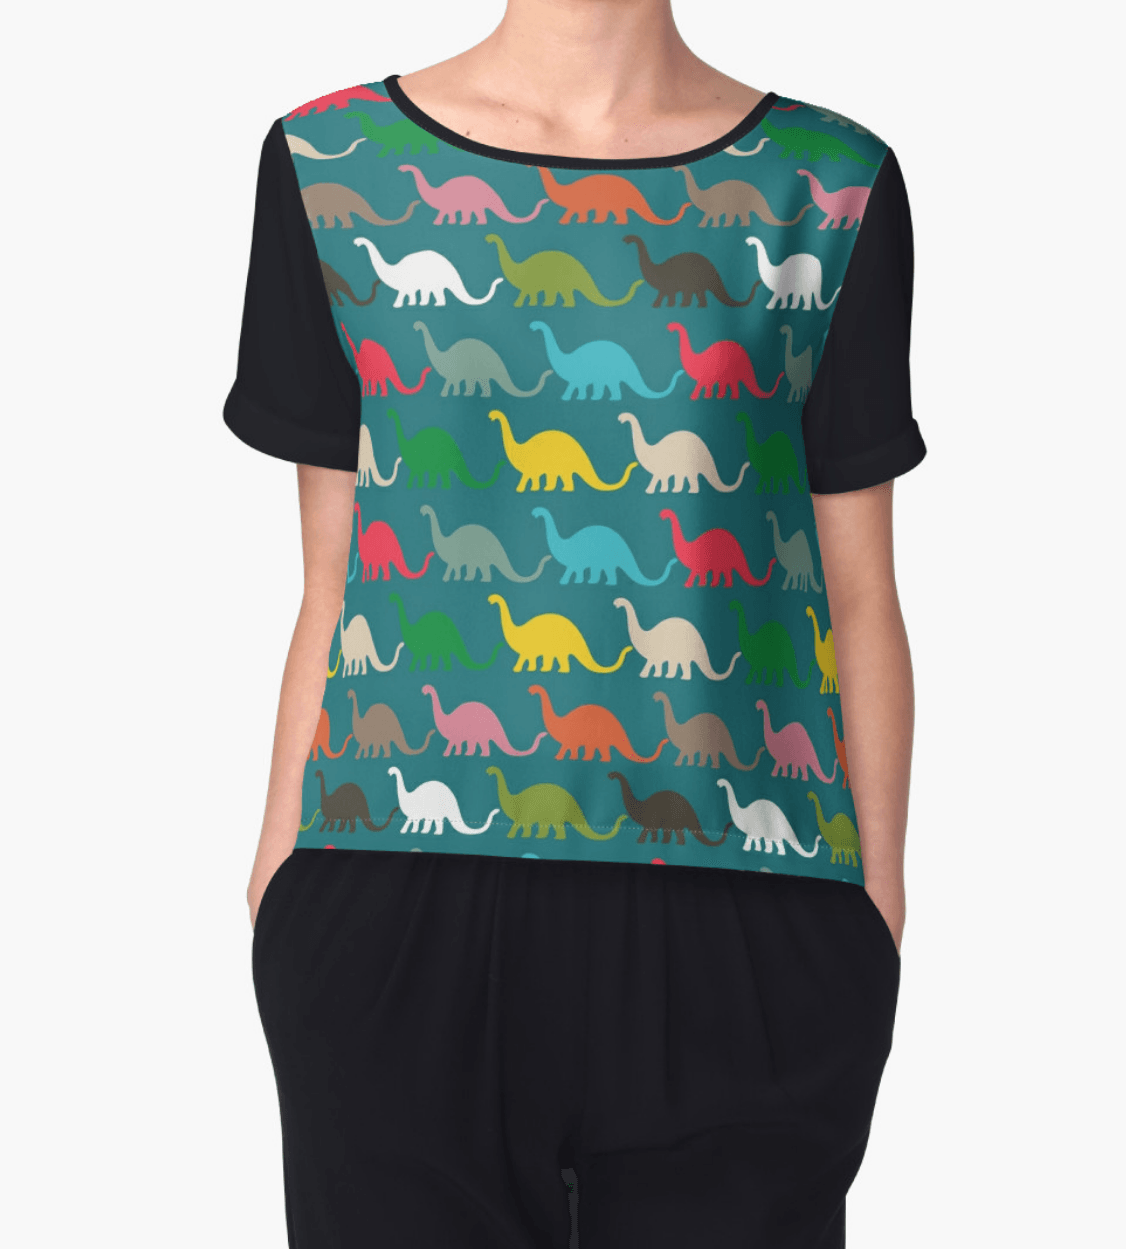 Dinosaurs top - Chiffon Tops - Women Blouse - Modern Clothing-TheGretest